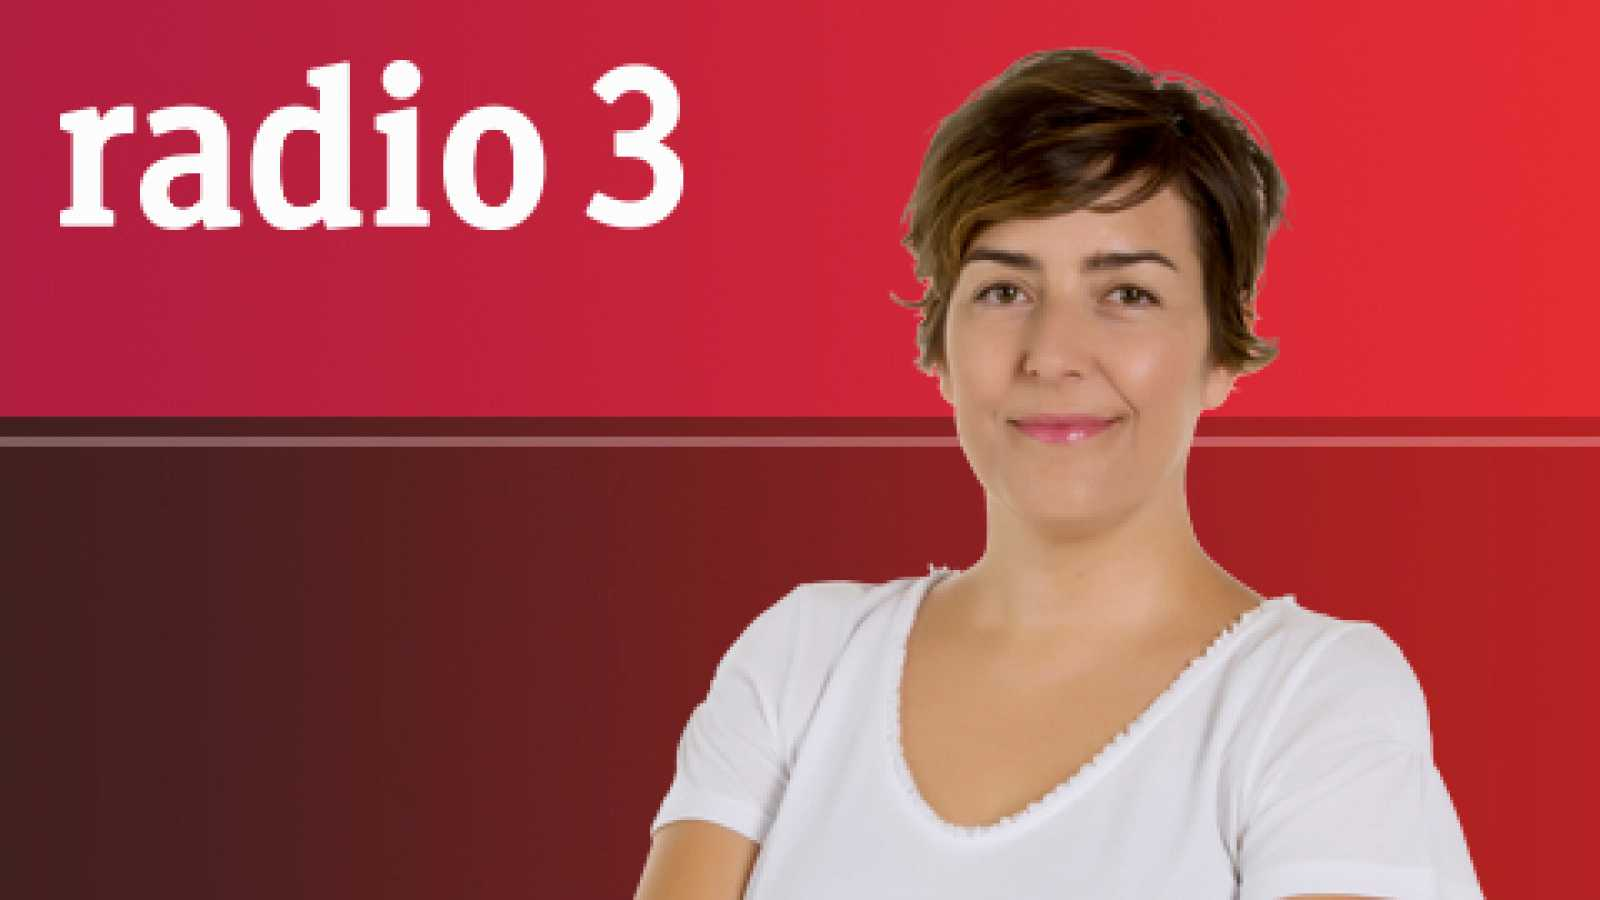 C3 efecto doppler radio 3 Monserrat Villar